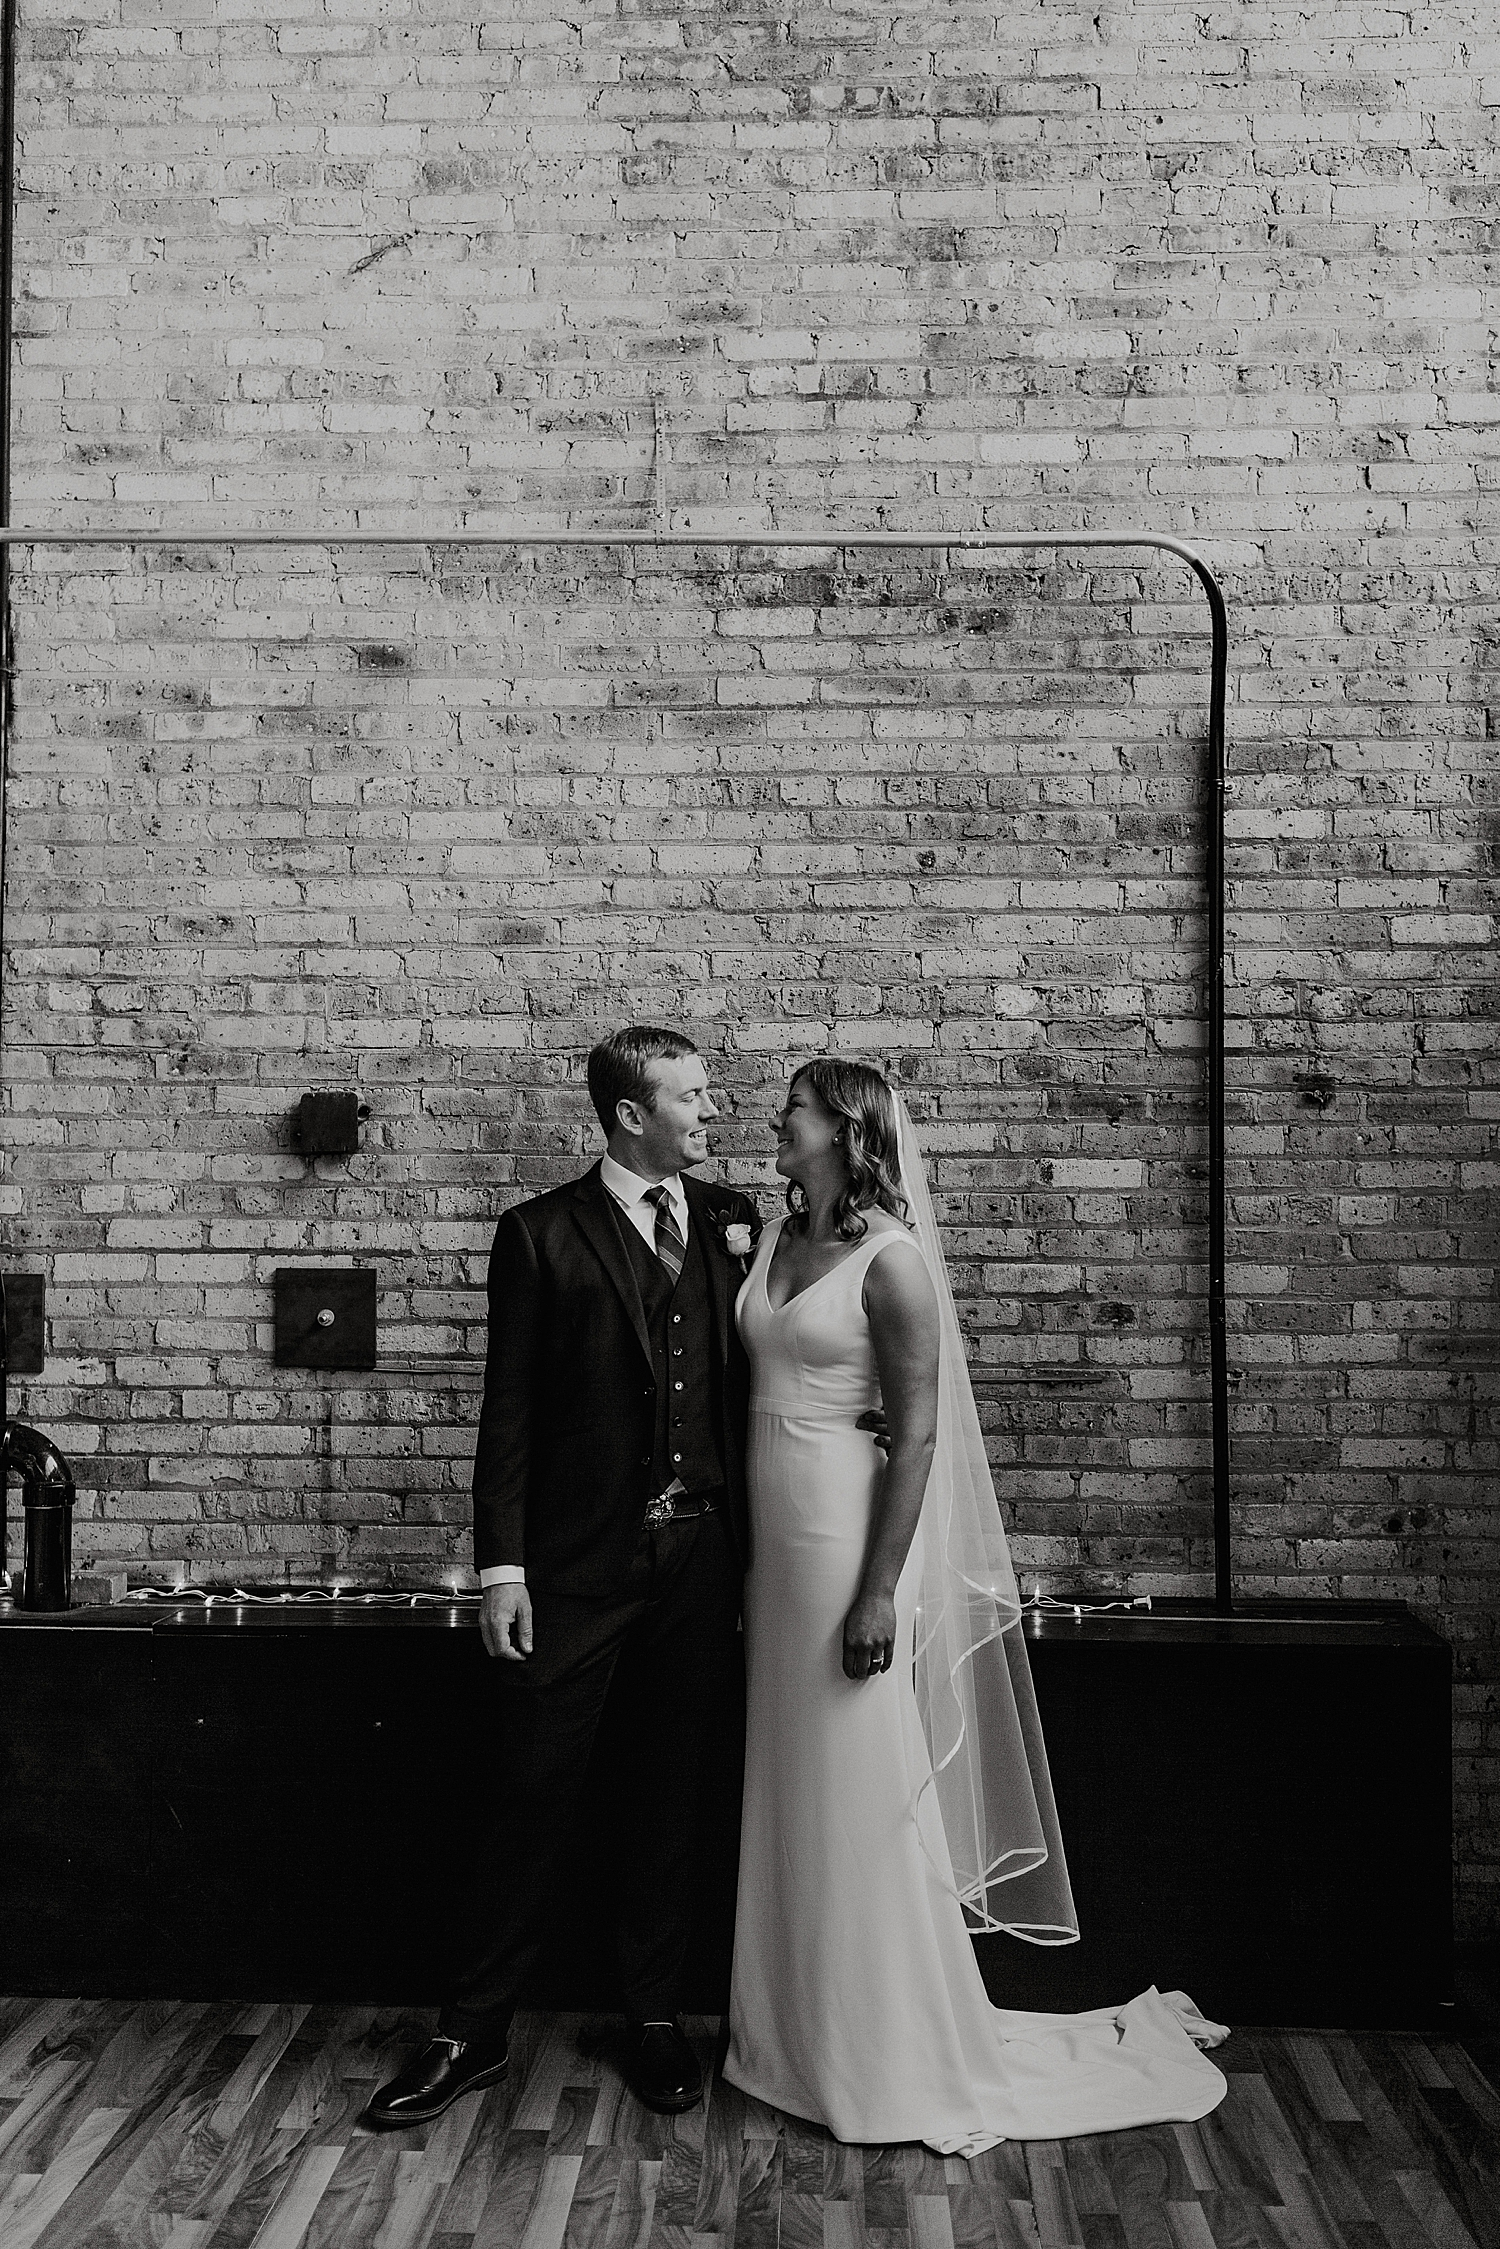 Cooperage-Wedding-Milwaukee_0020.jpg